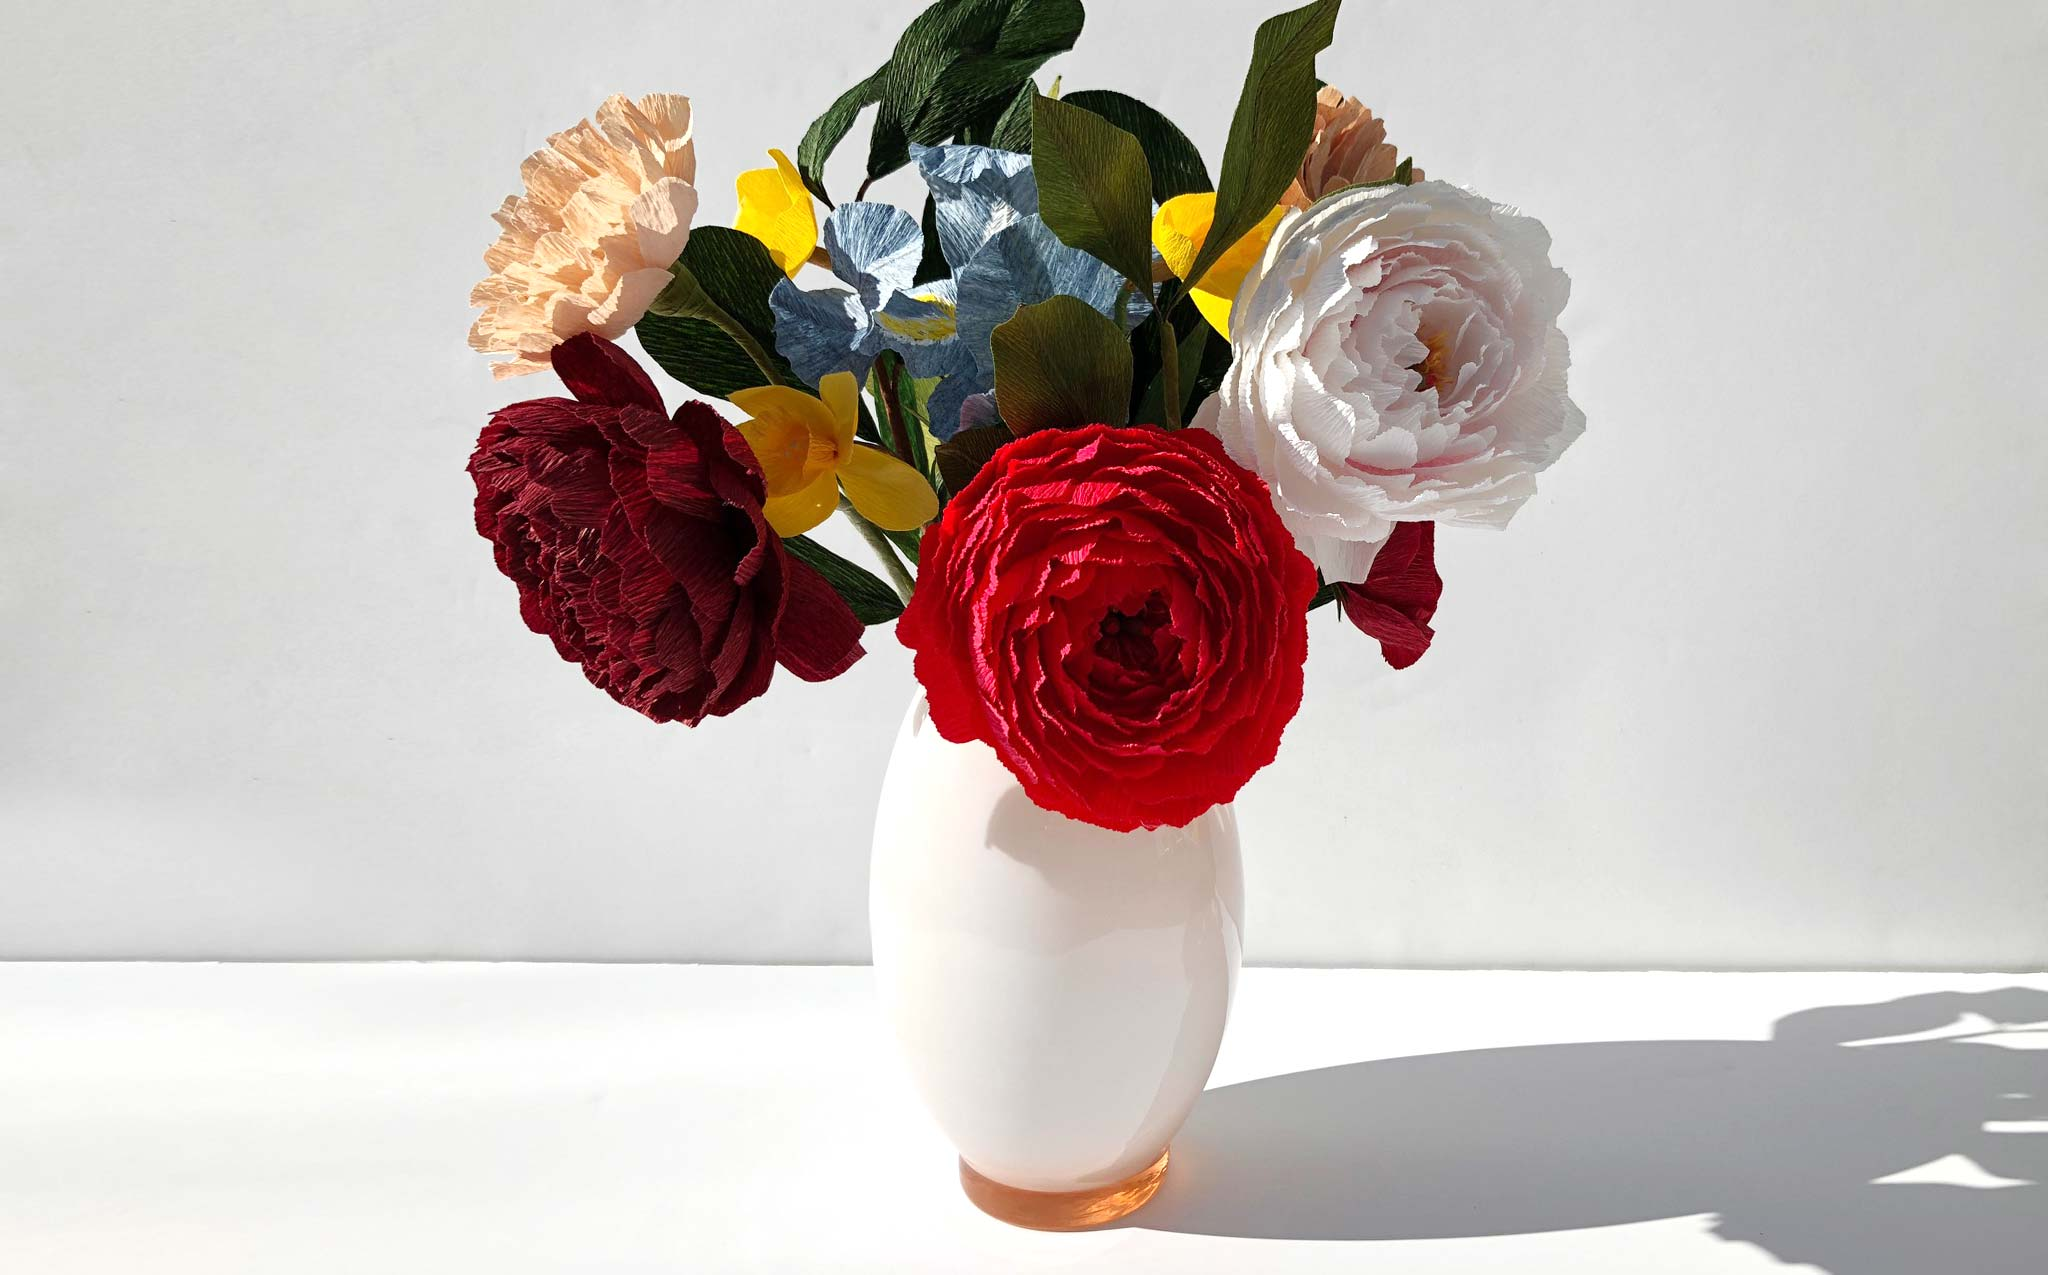 Handmade and Naturally Dyed Floral Arrangement